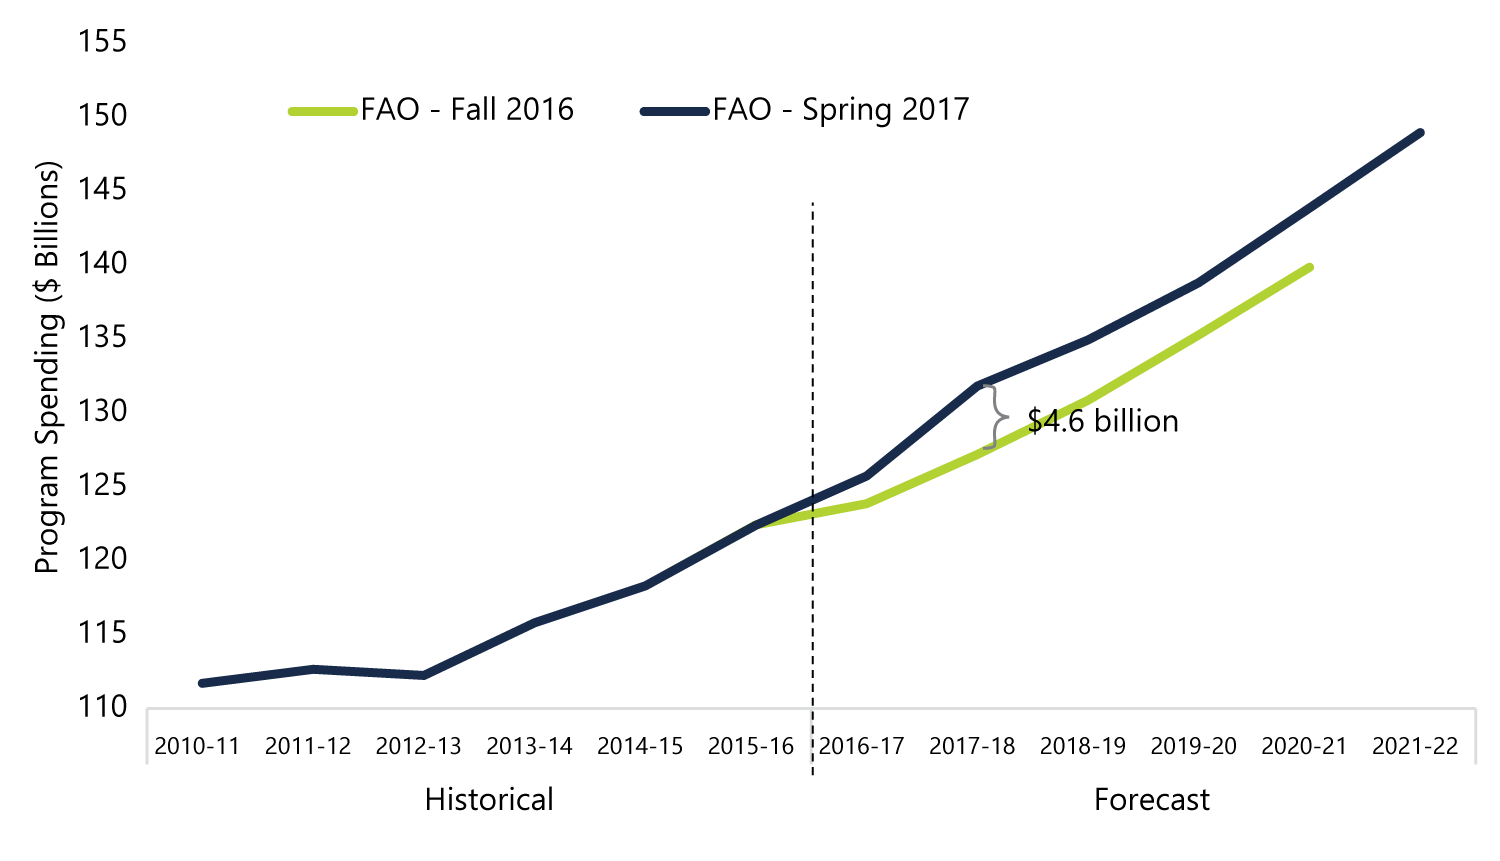 Program Expense Higher than Projected in the Fall